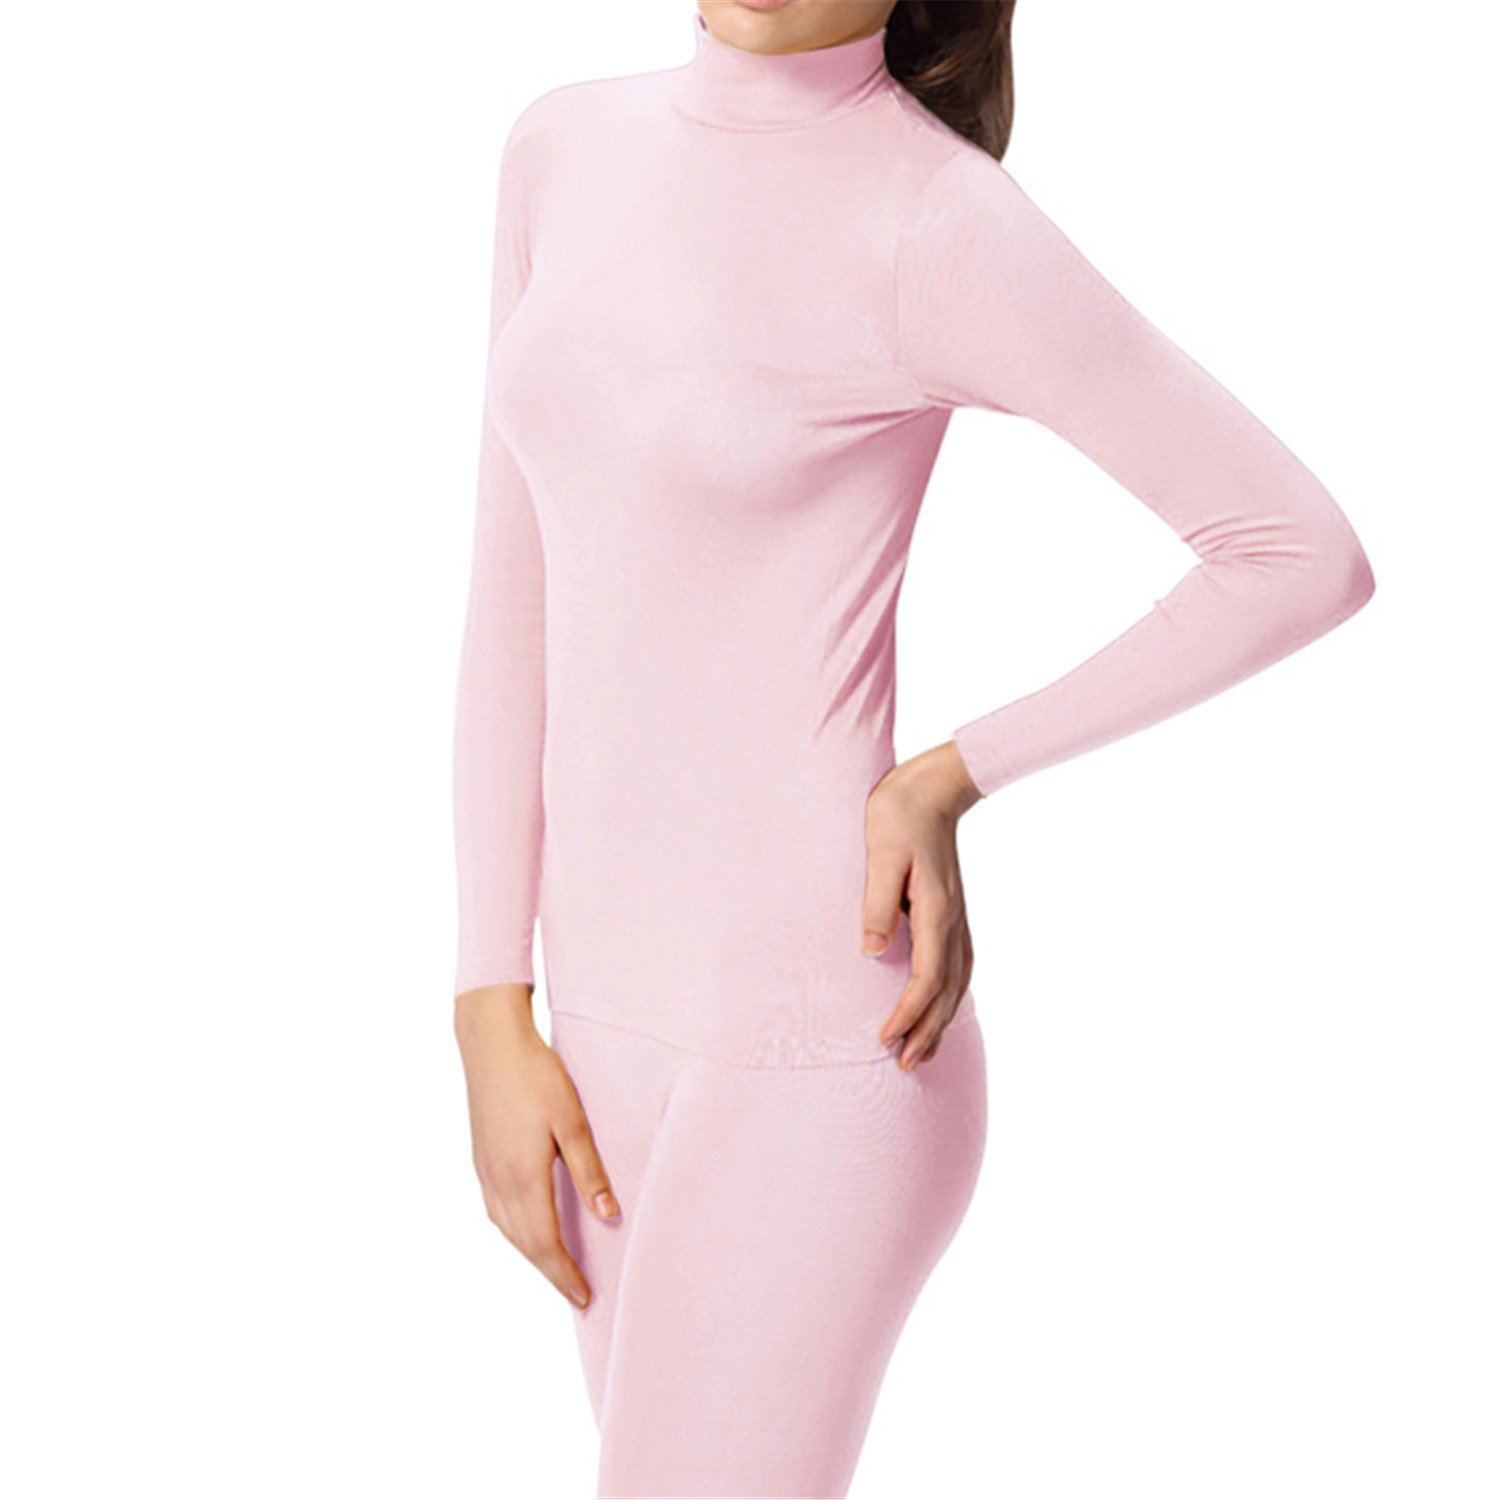 Dapengzhu Spring Autumn Winter Women's Thermal Underwear Long Set High Collar Thermo Underwears Set le Fitness Long 7248 PINK M by Dapengzhu (Image #1)